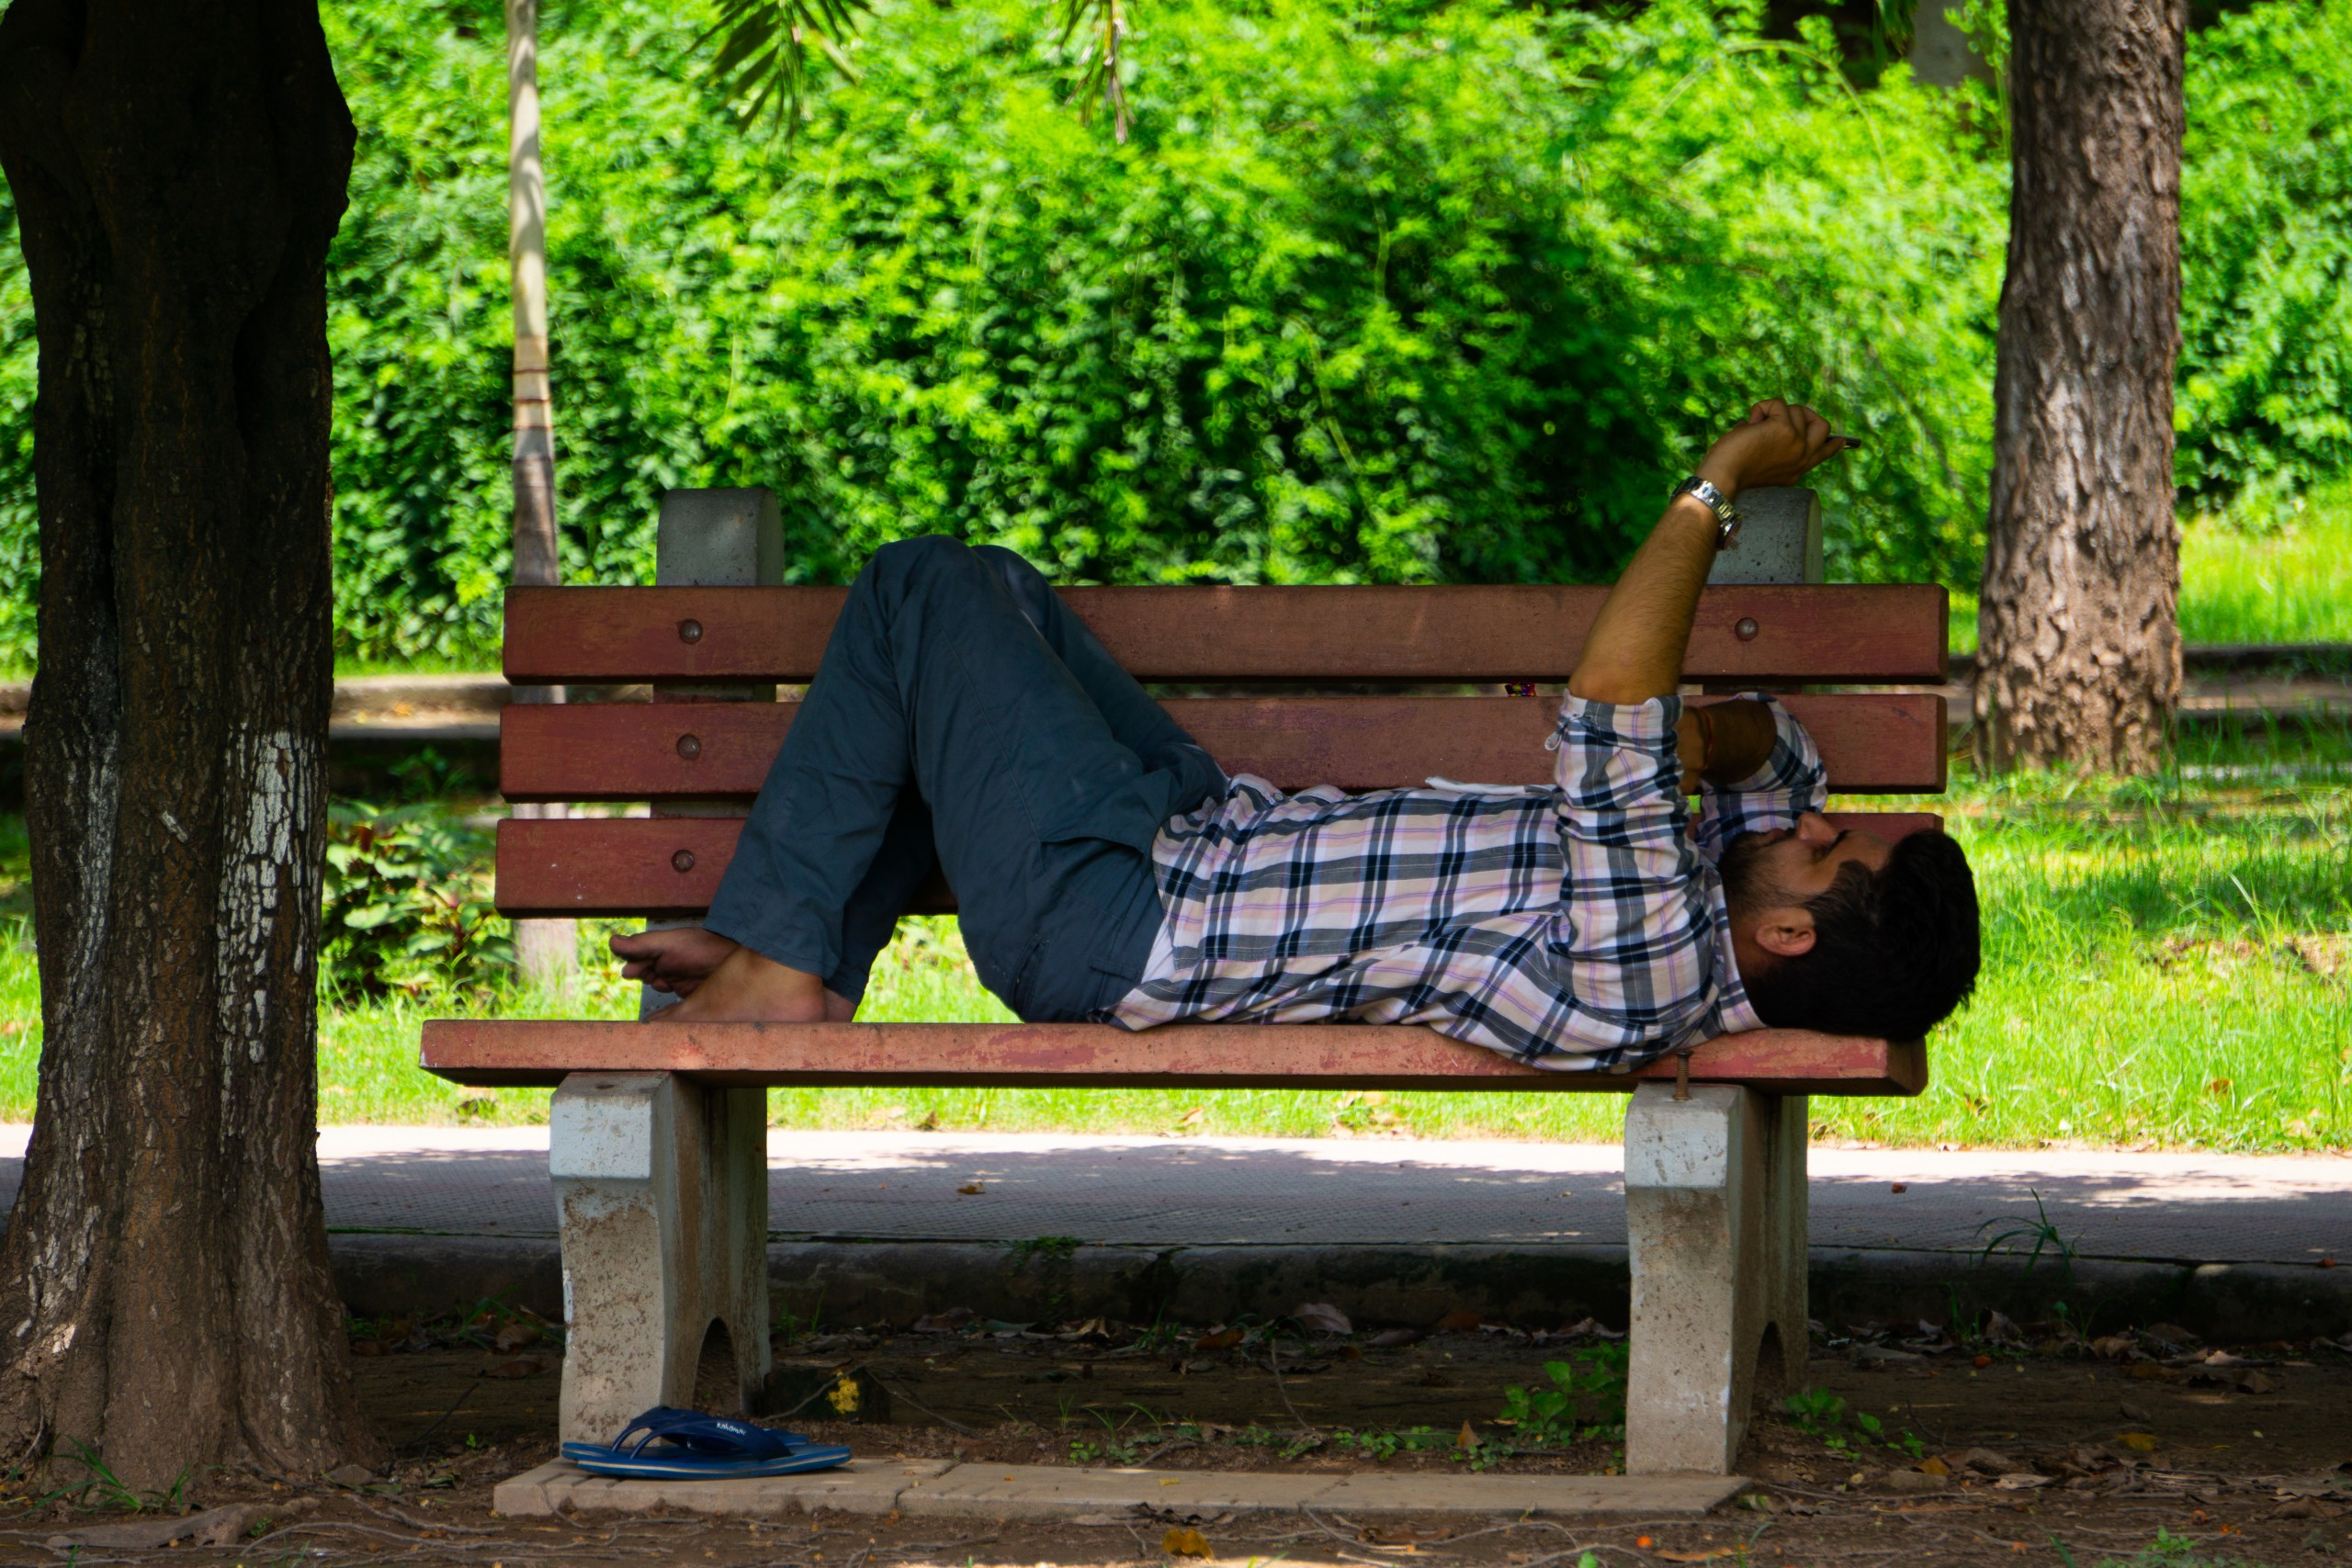 Man relaxing in a park